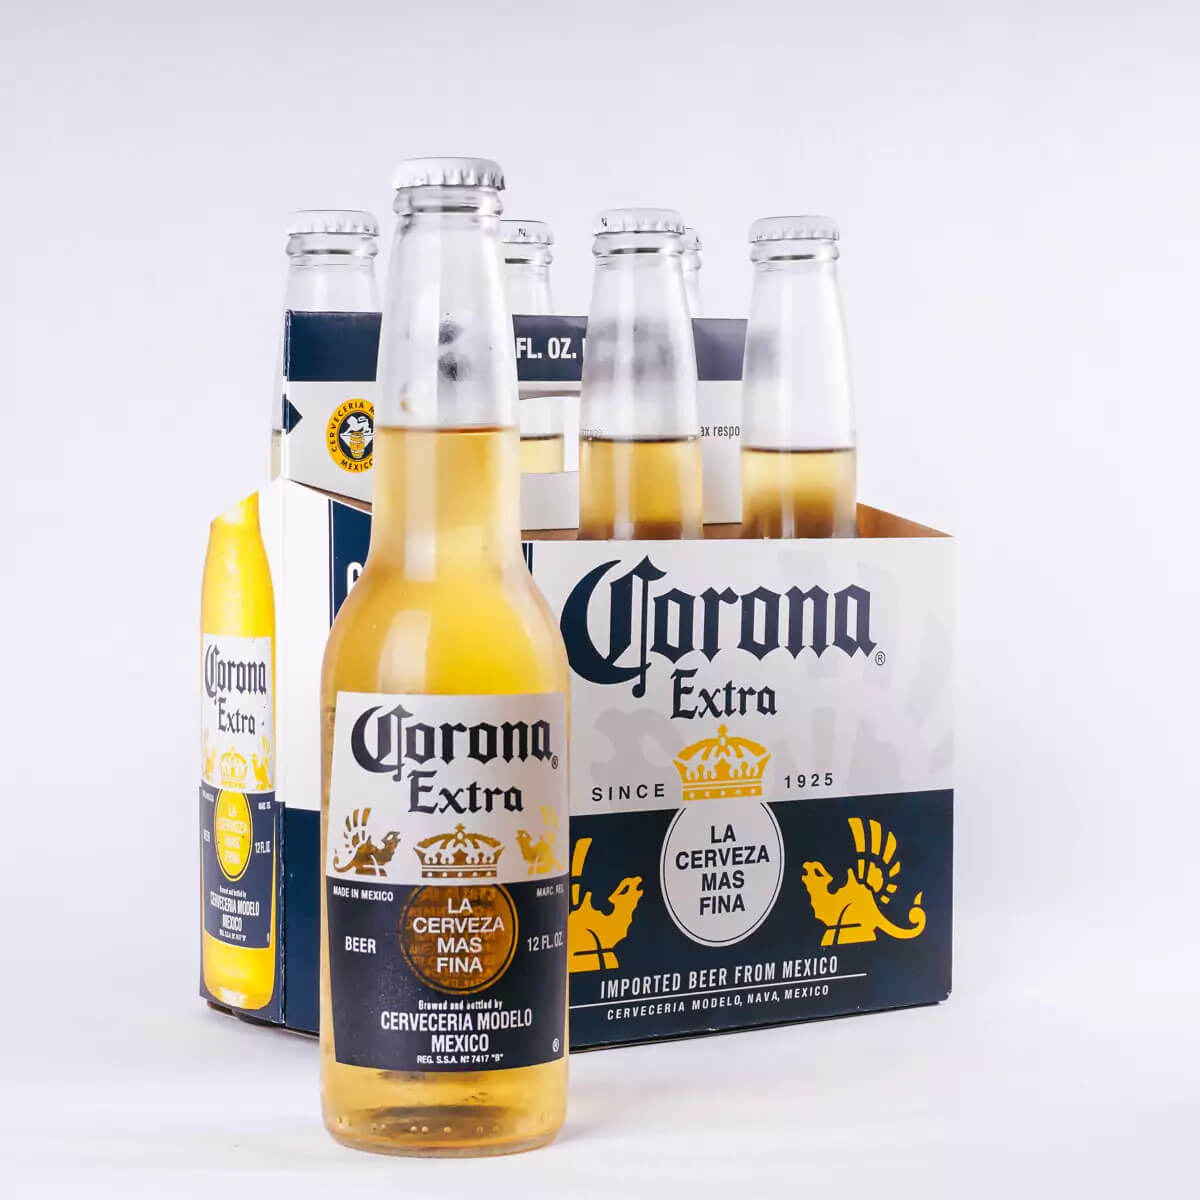 Corona Extra, one of the beers from Constellation Brands